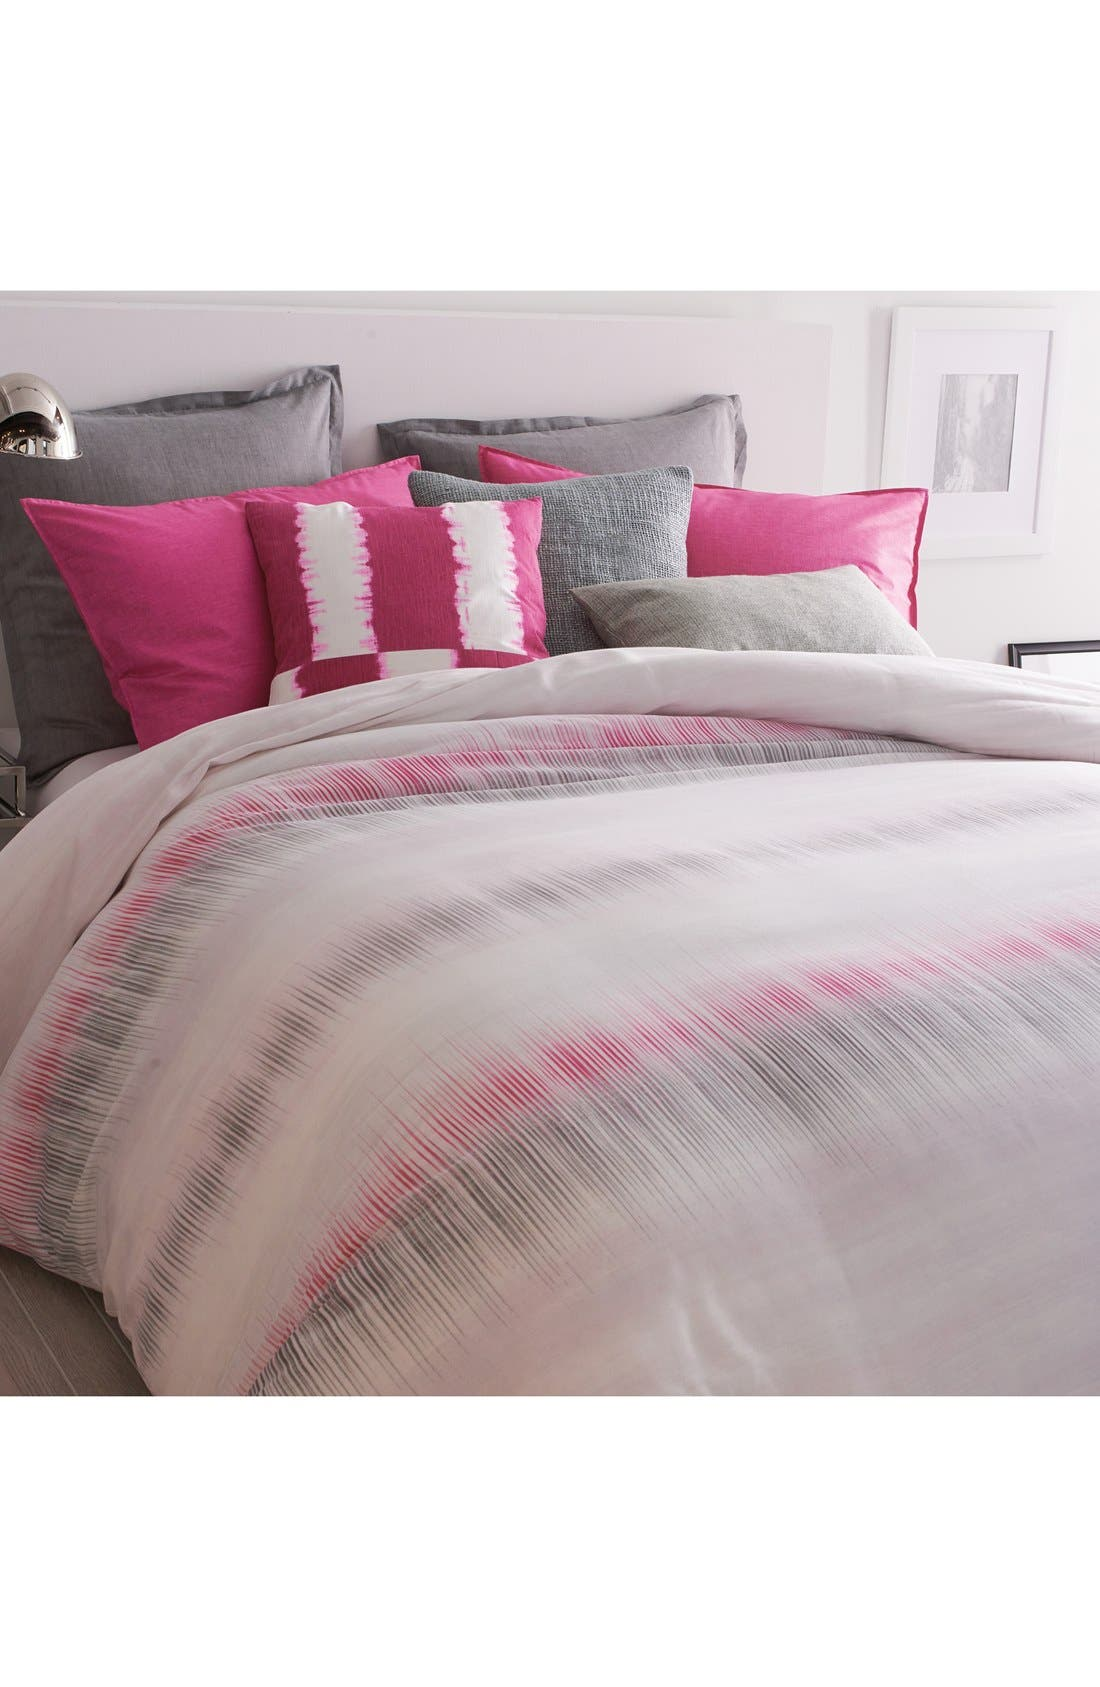 Alternate Image 1 Selected - DKNY 'Frequency' Duvet Cover